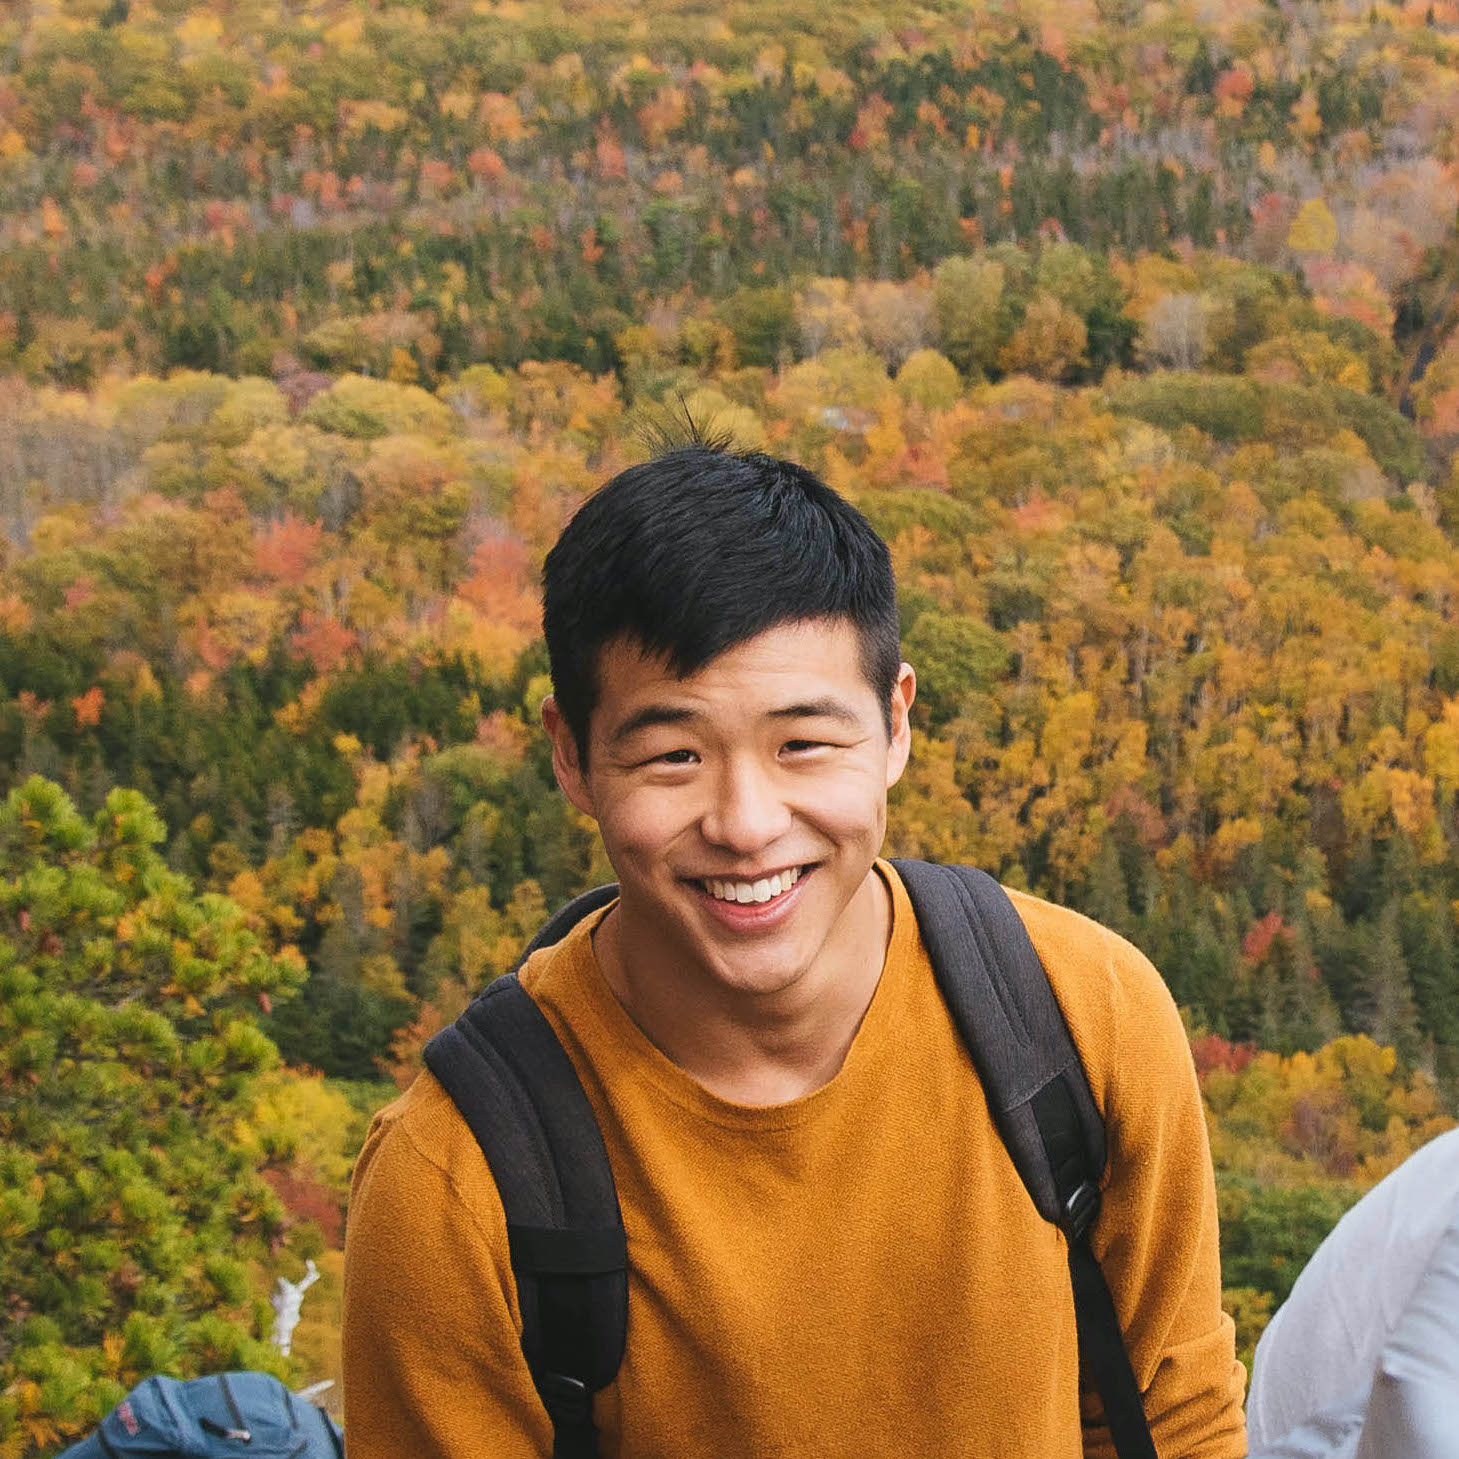 A photo of Miles Kim in Maine.